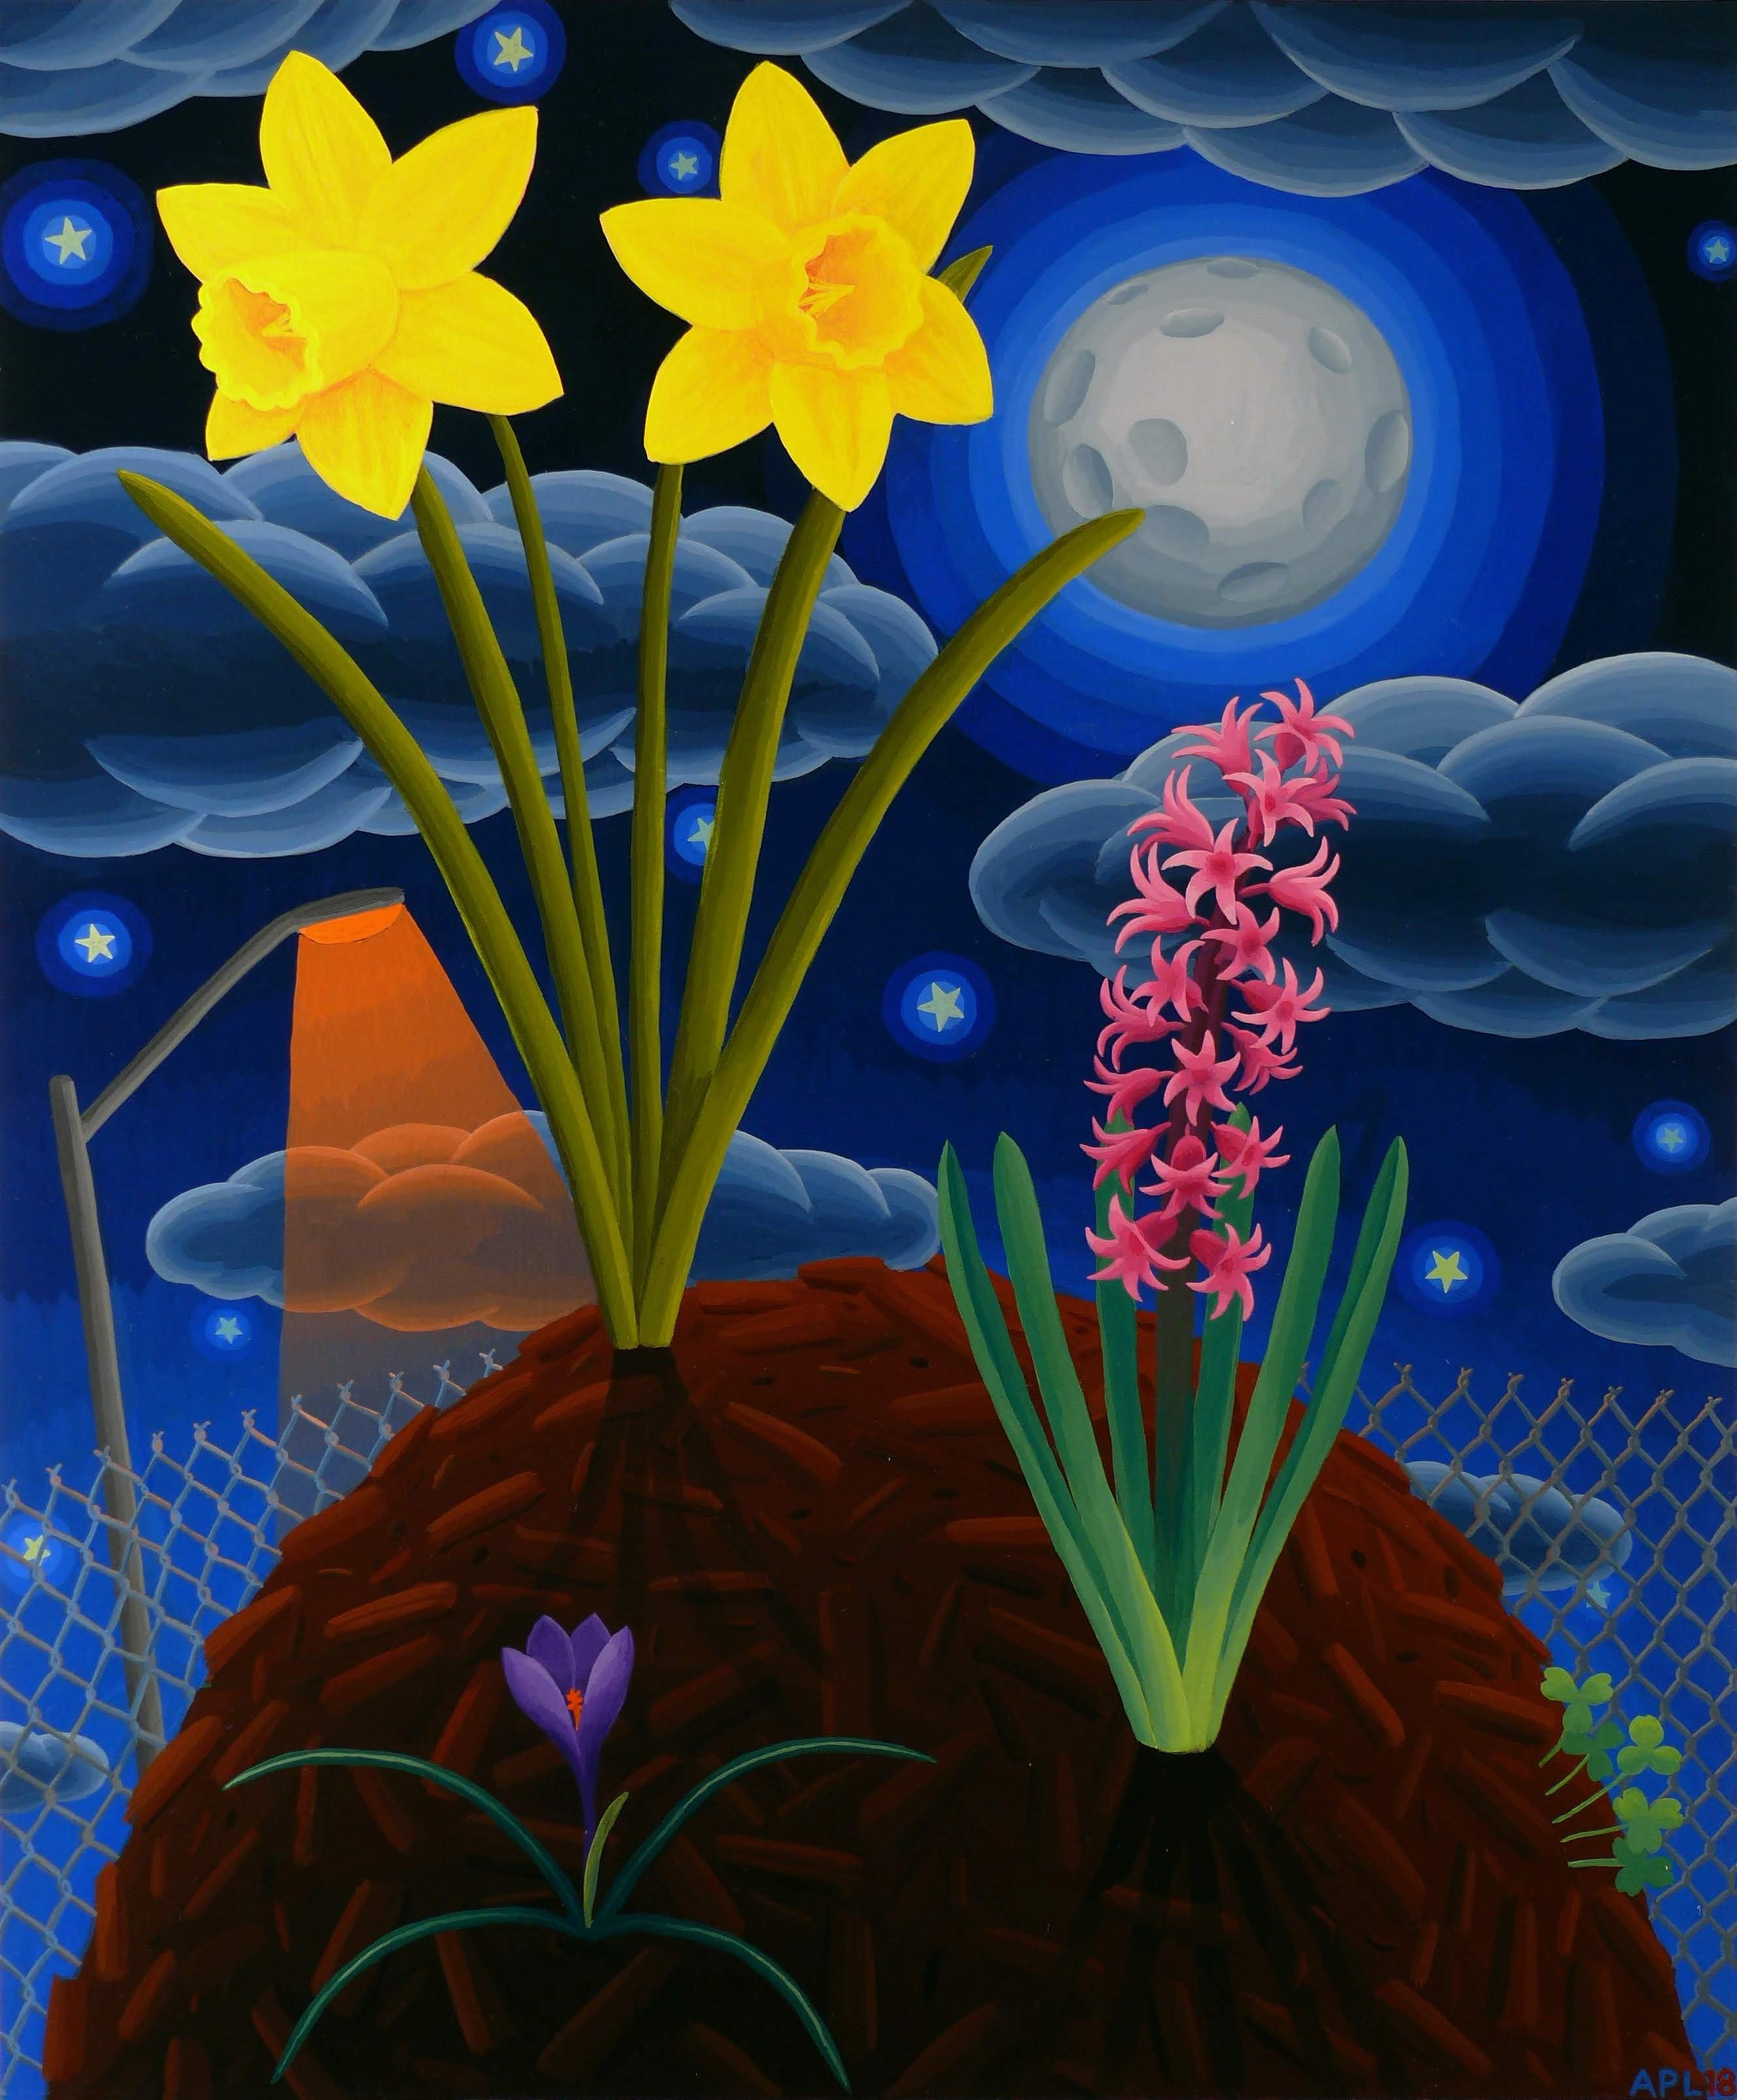 AmyLincoln_Daffodil and Hyacinth_24x20inches.jpg